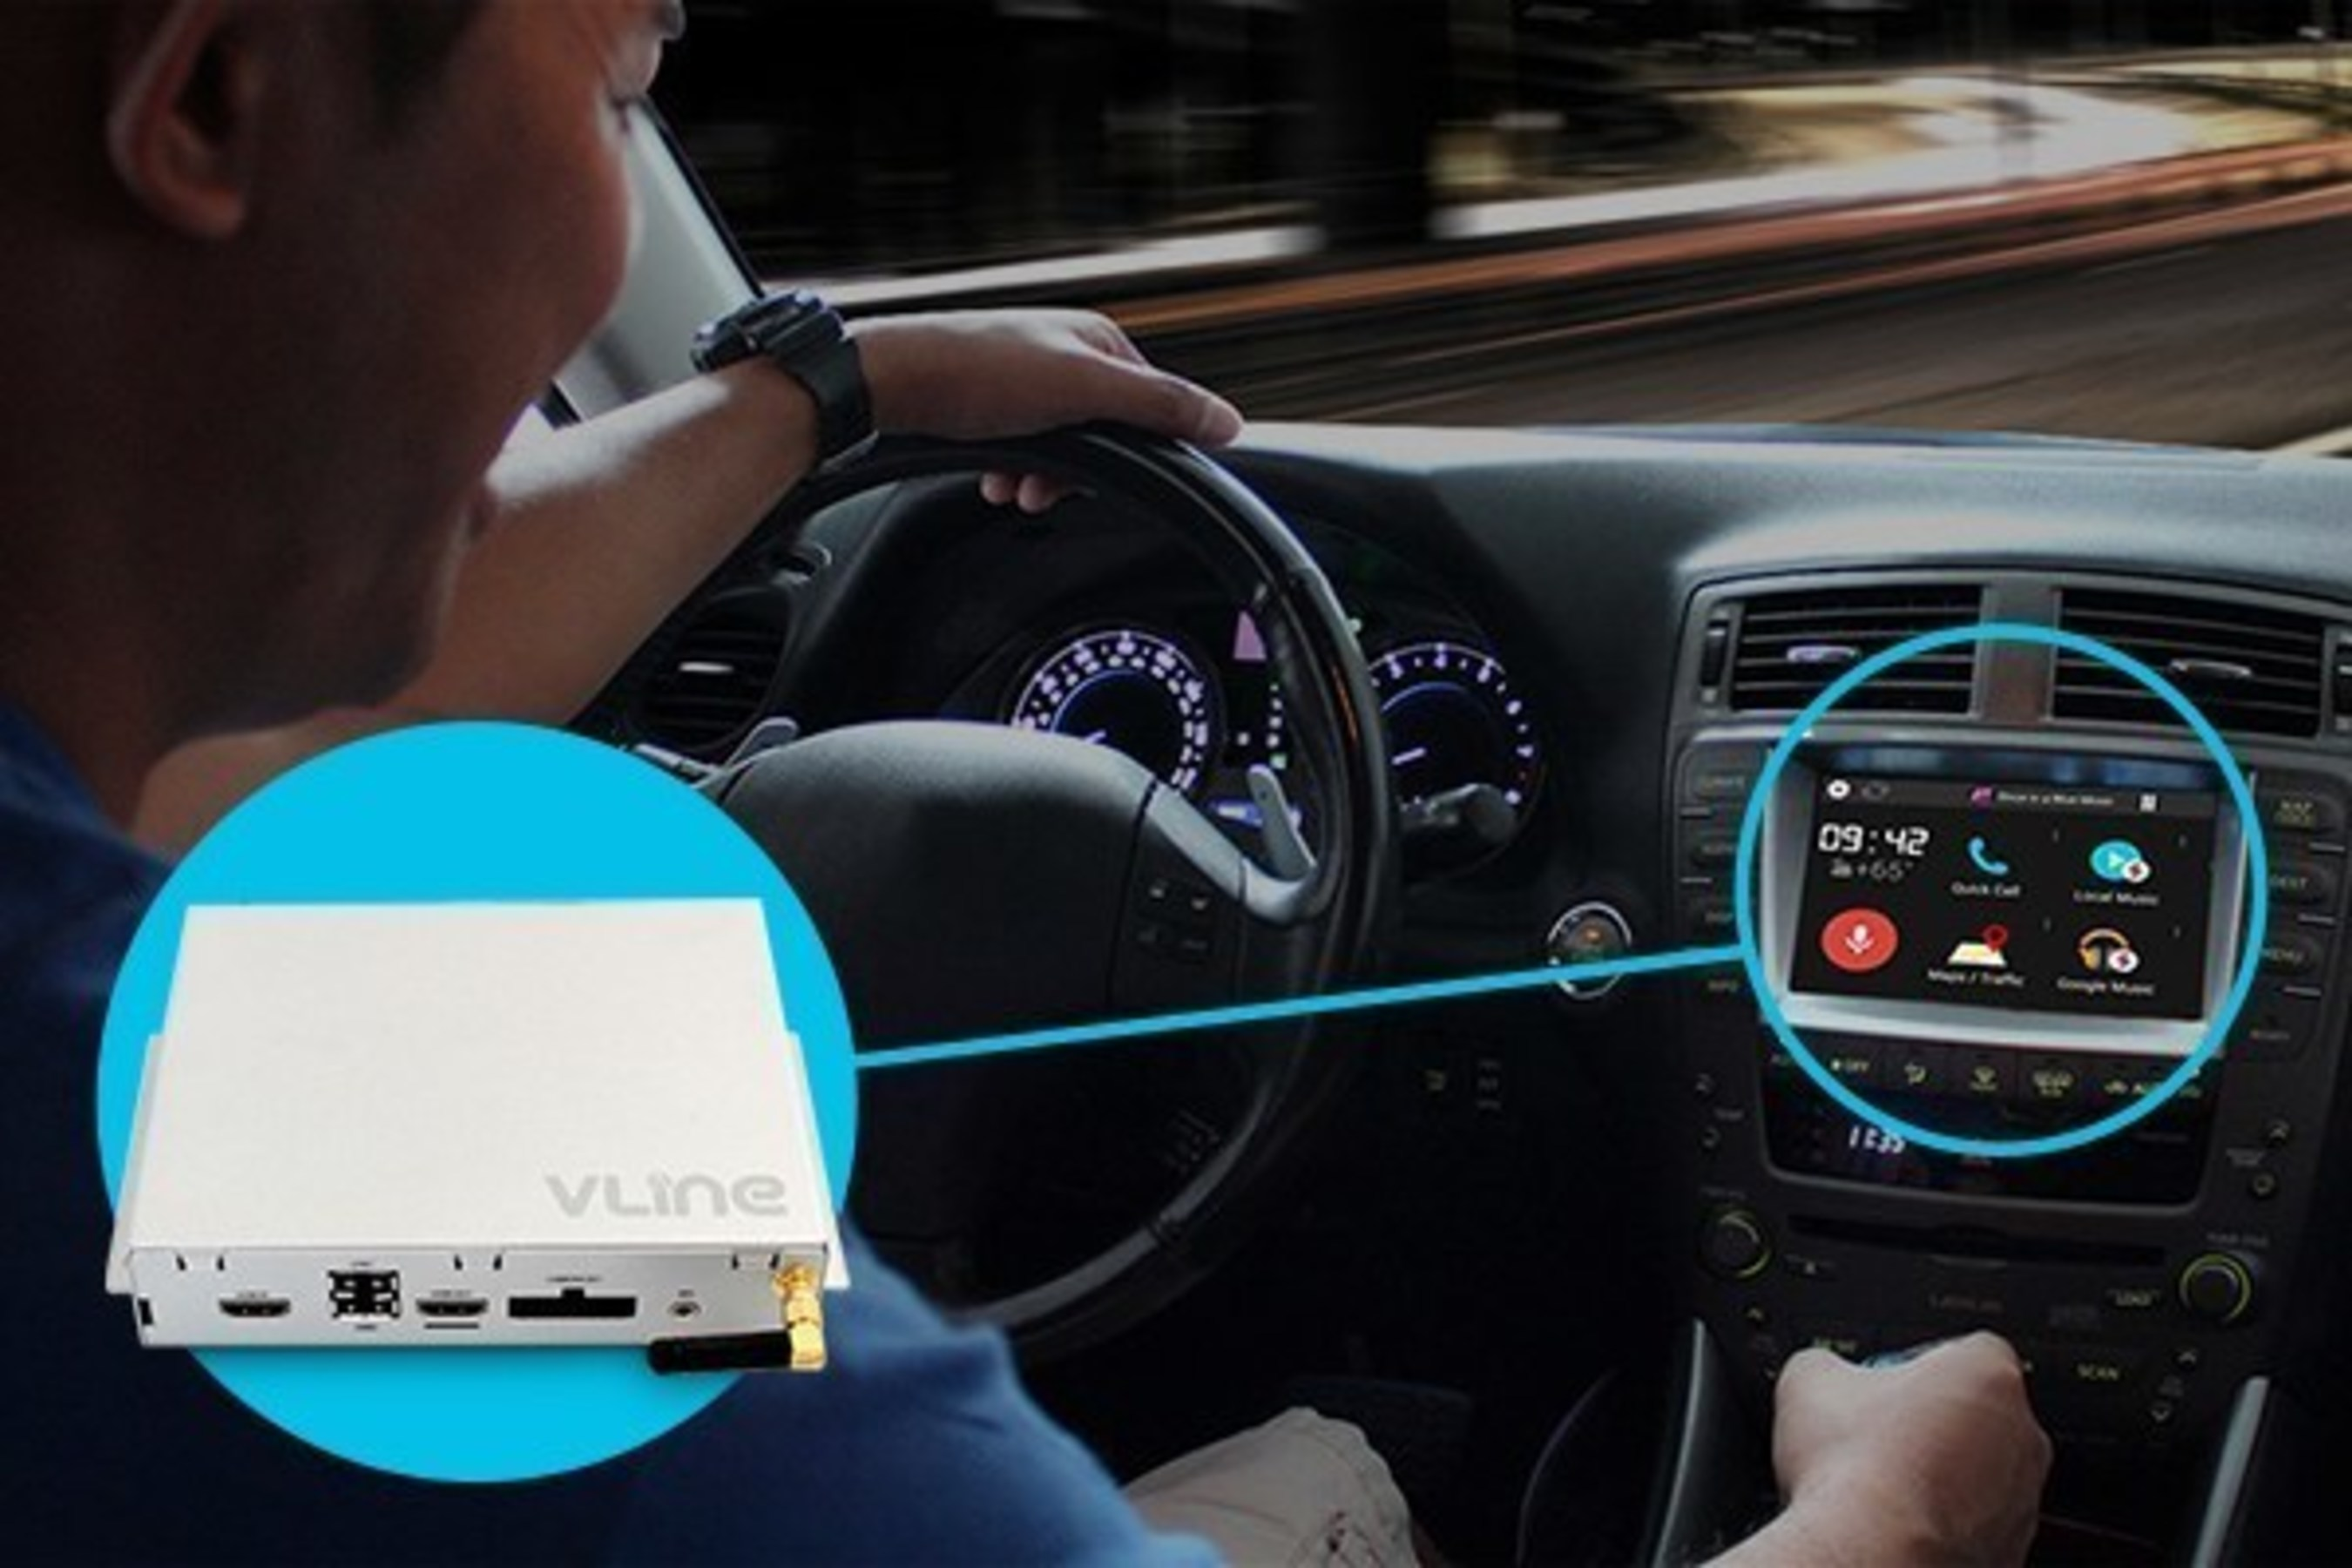 GROM Audio Announces the Release of VLine - Infotainment